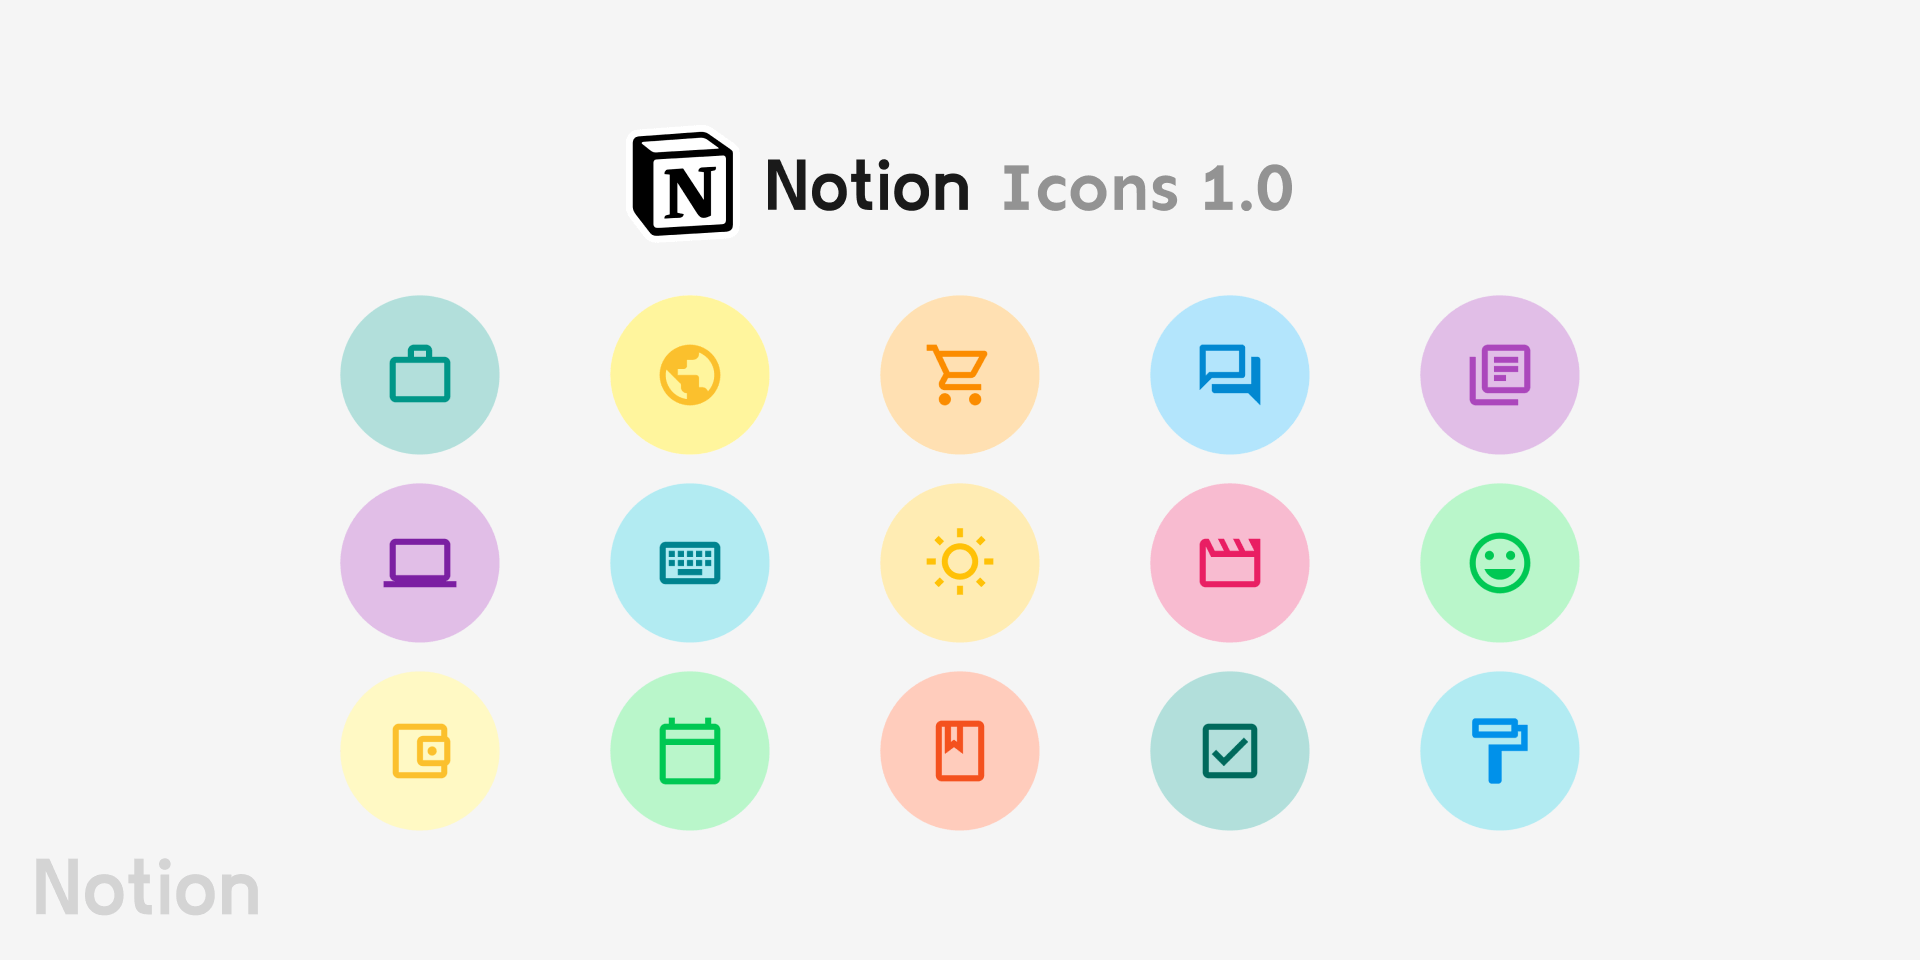 Notion Icons 1.0